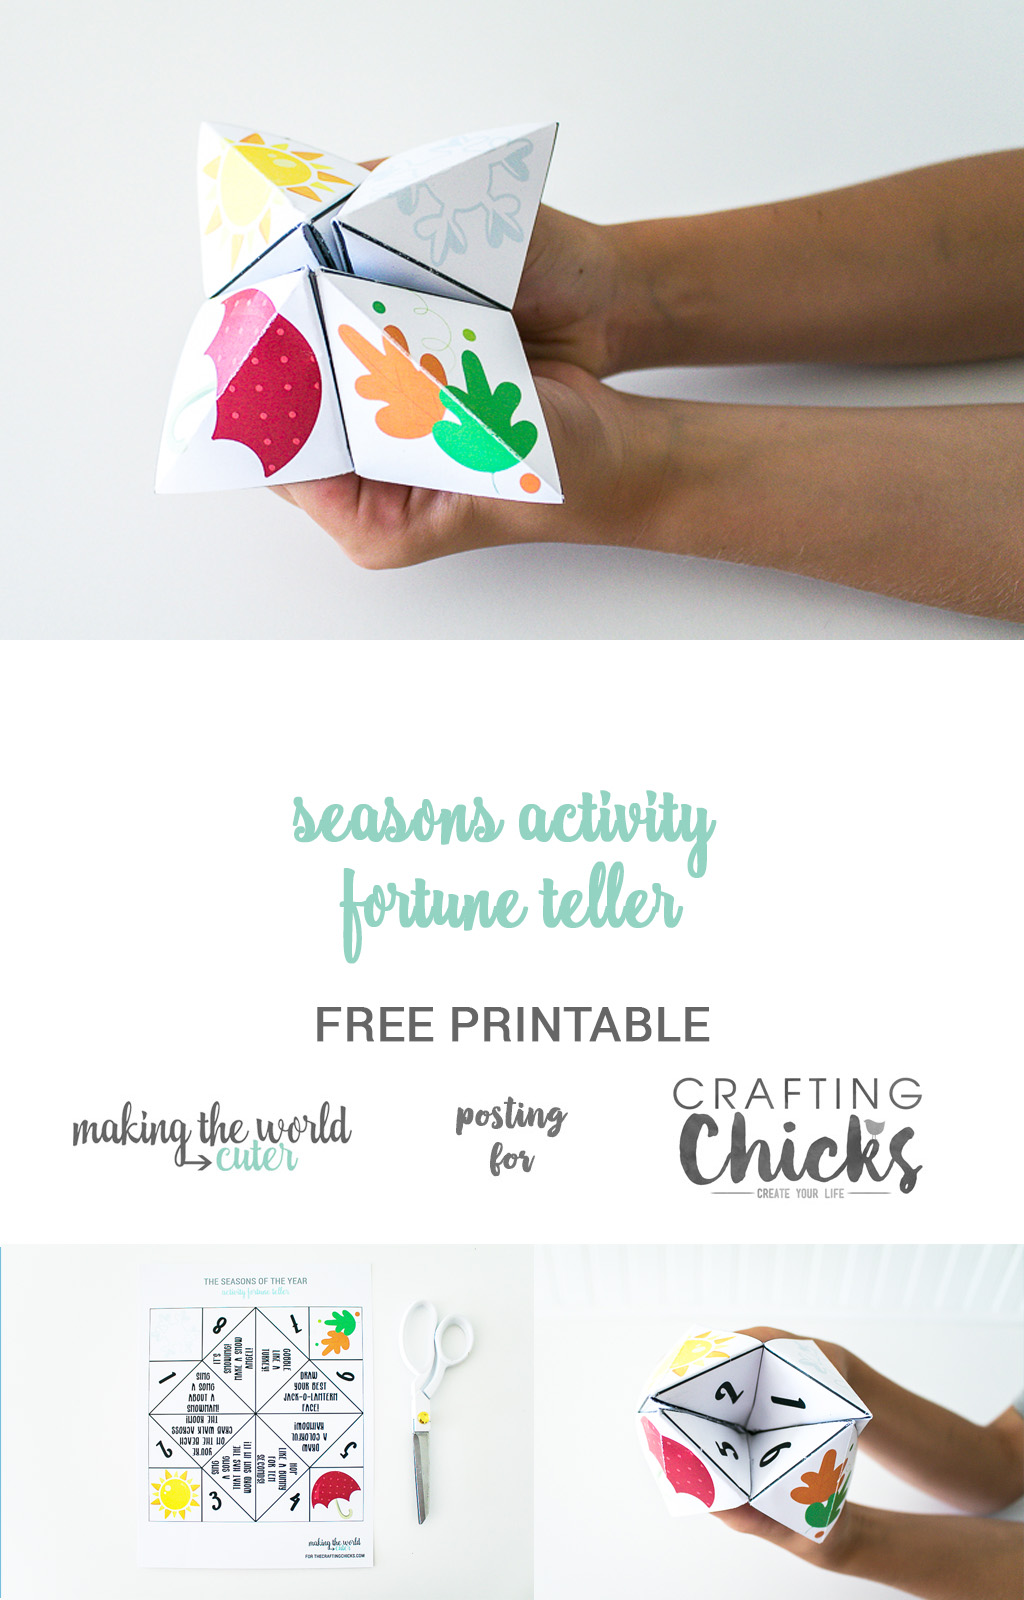 photo regarding Printable Fortune Teller called Seasons Sport Fortune Teller Totally free Printable - The